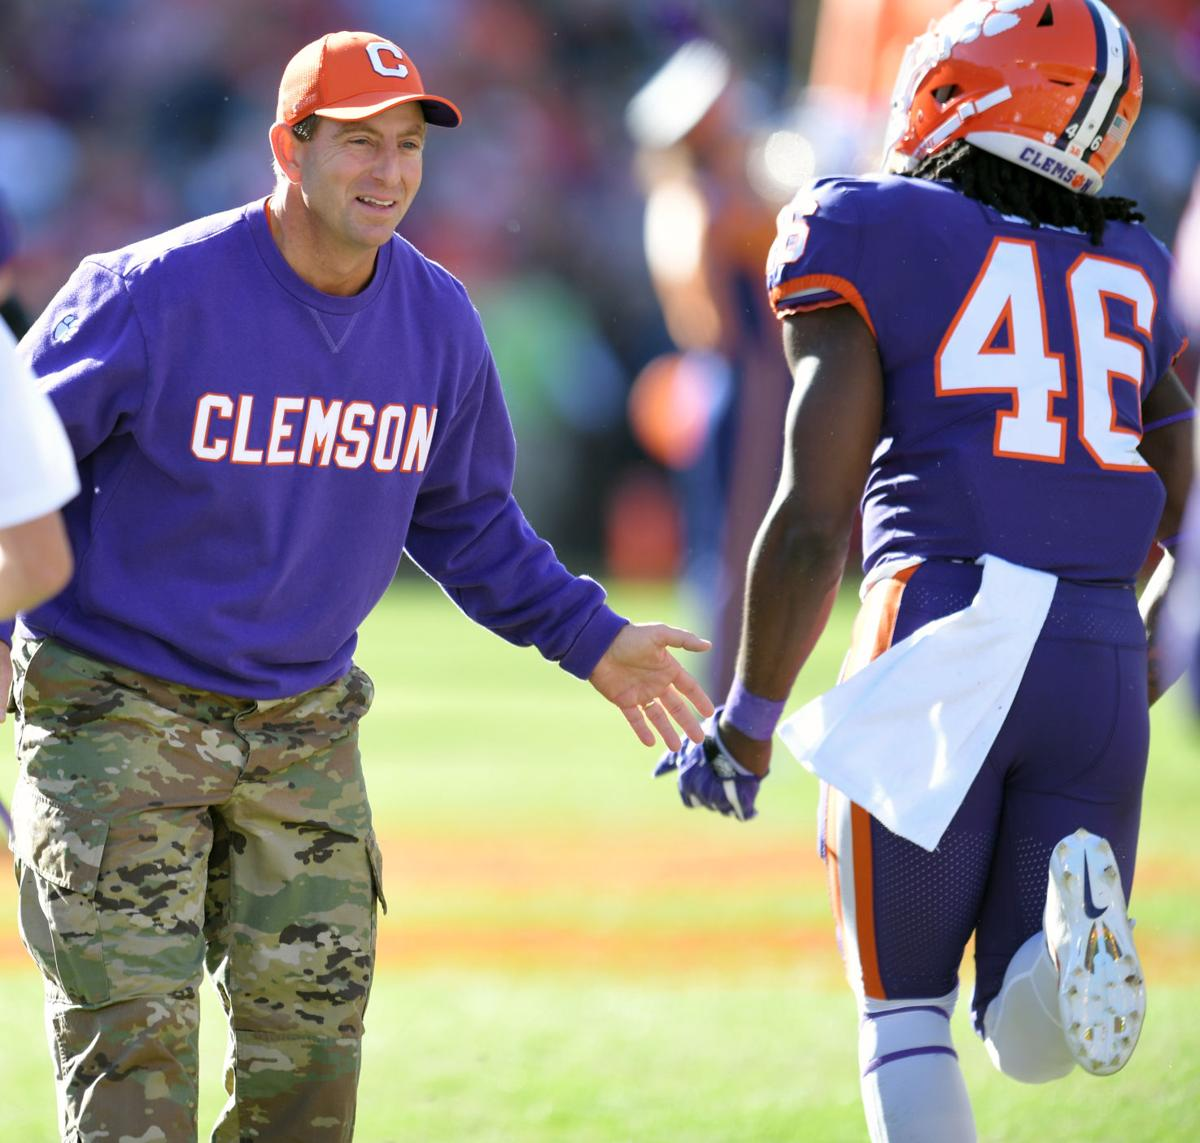 Mission Accomplished For Clemson Against Wofford On Military